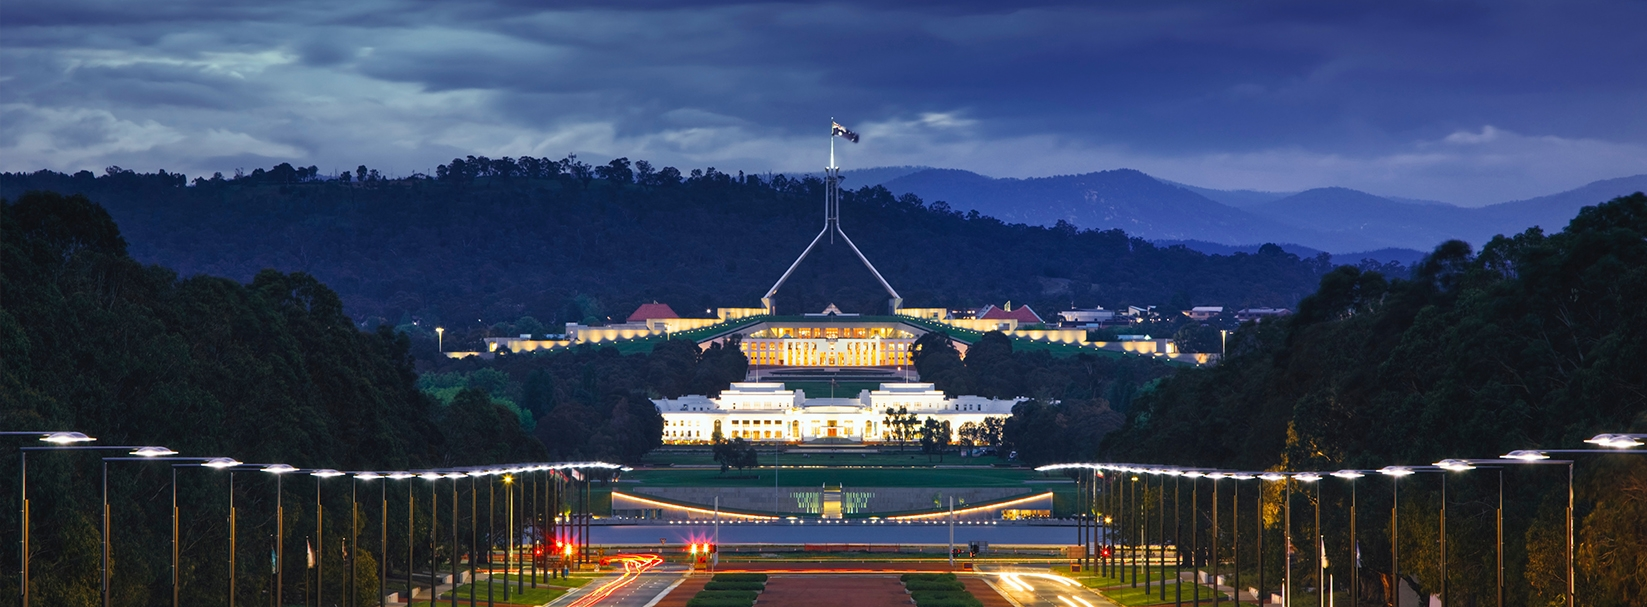 The year that was and 2018 forecast for Canberra